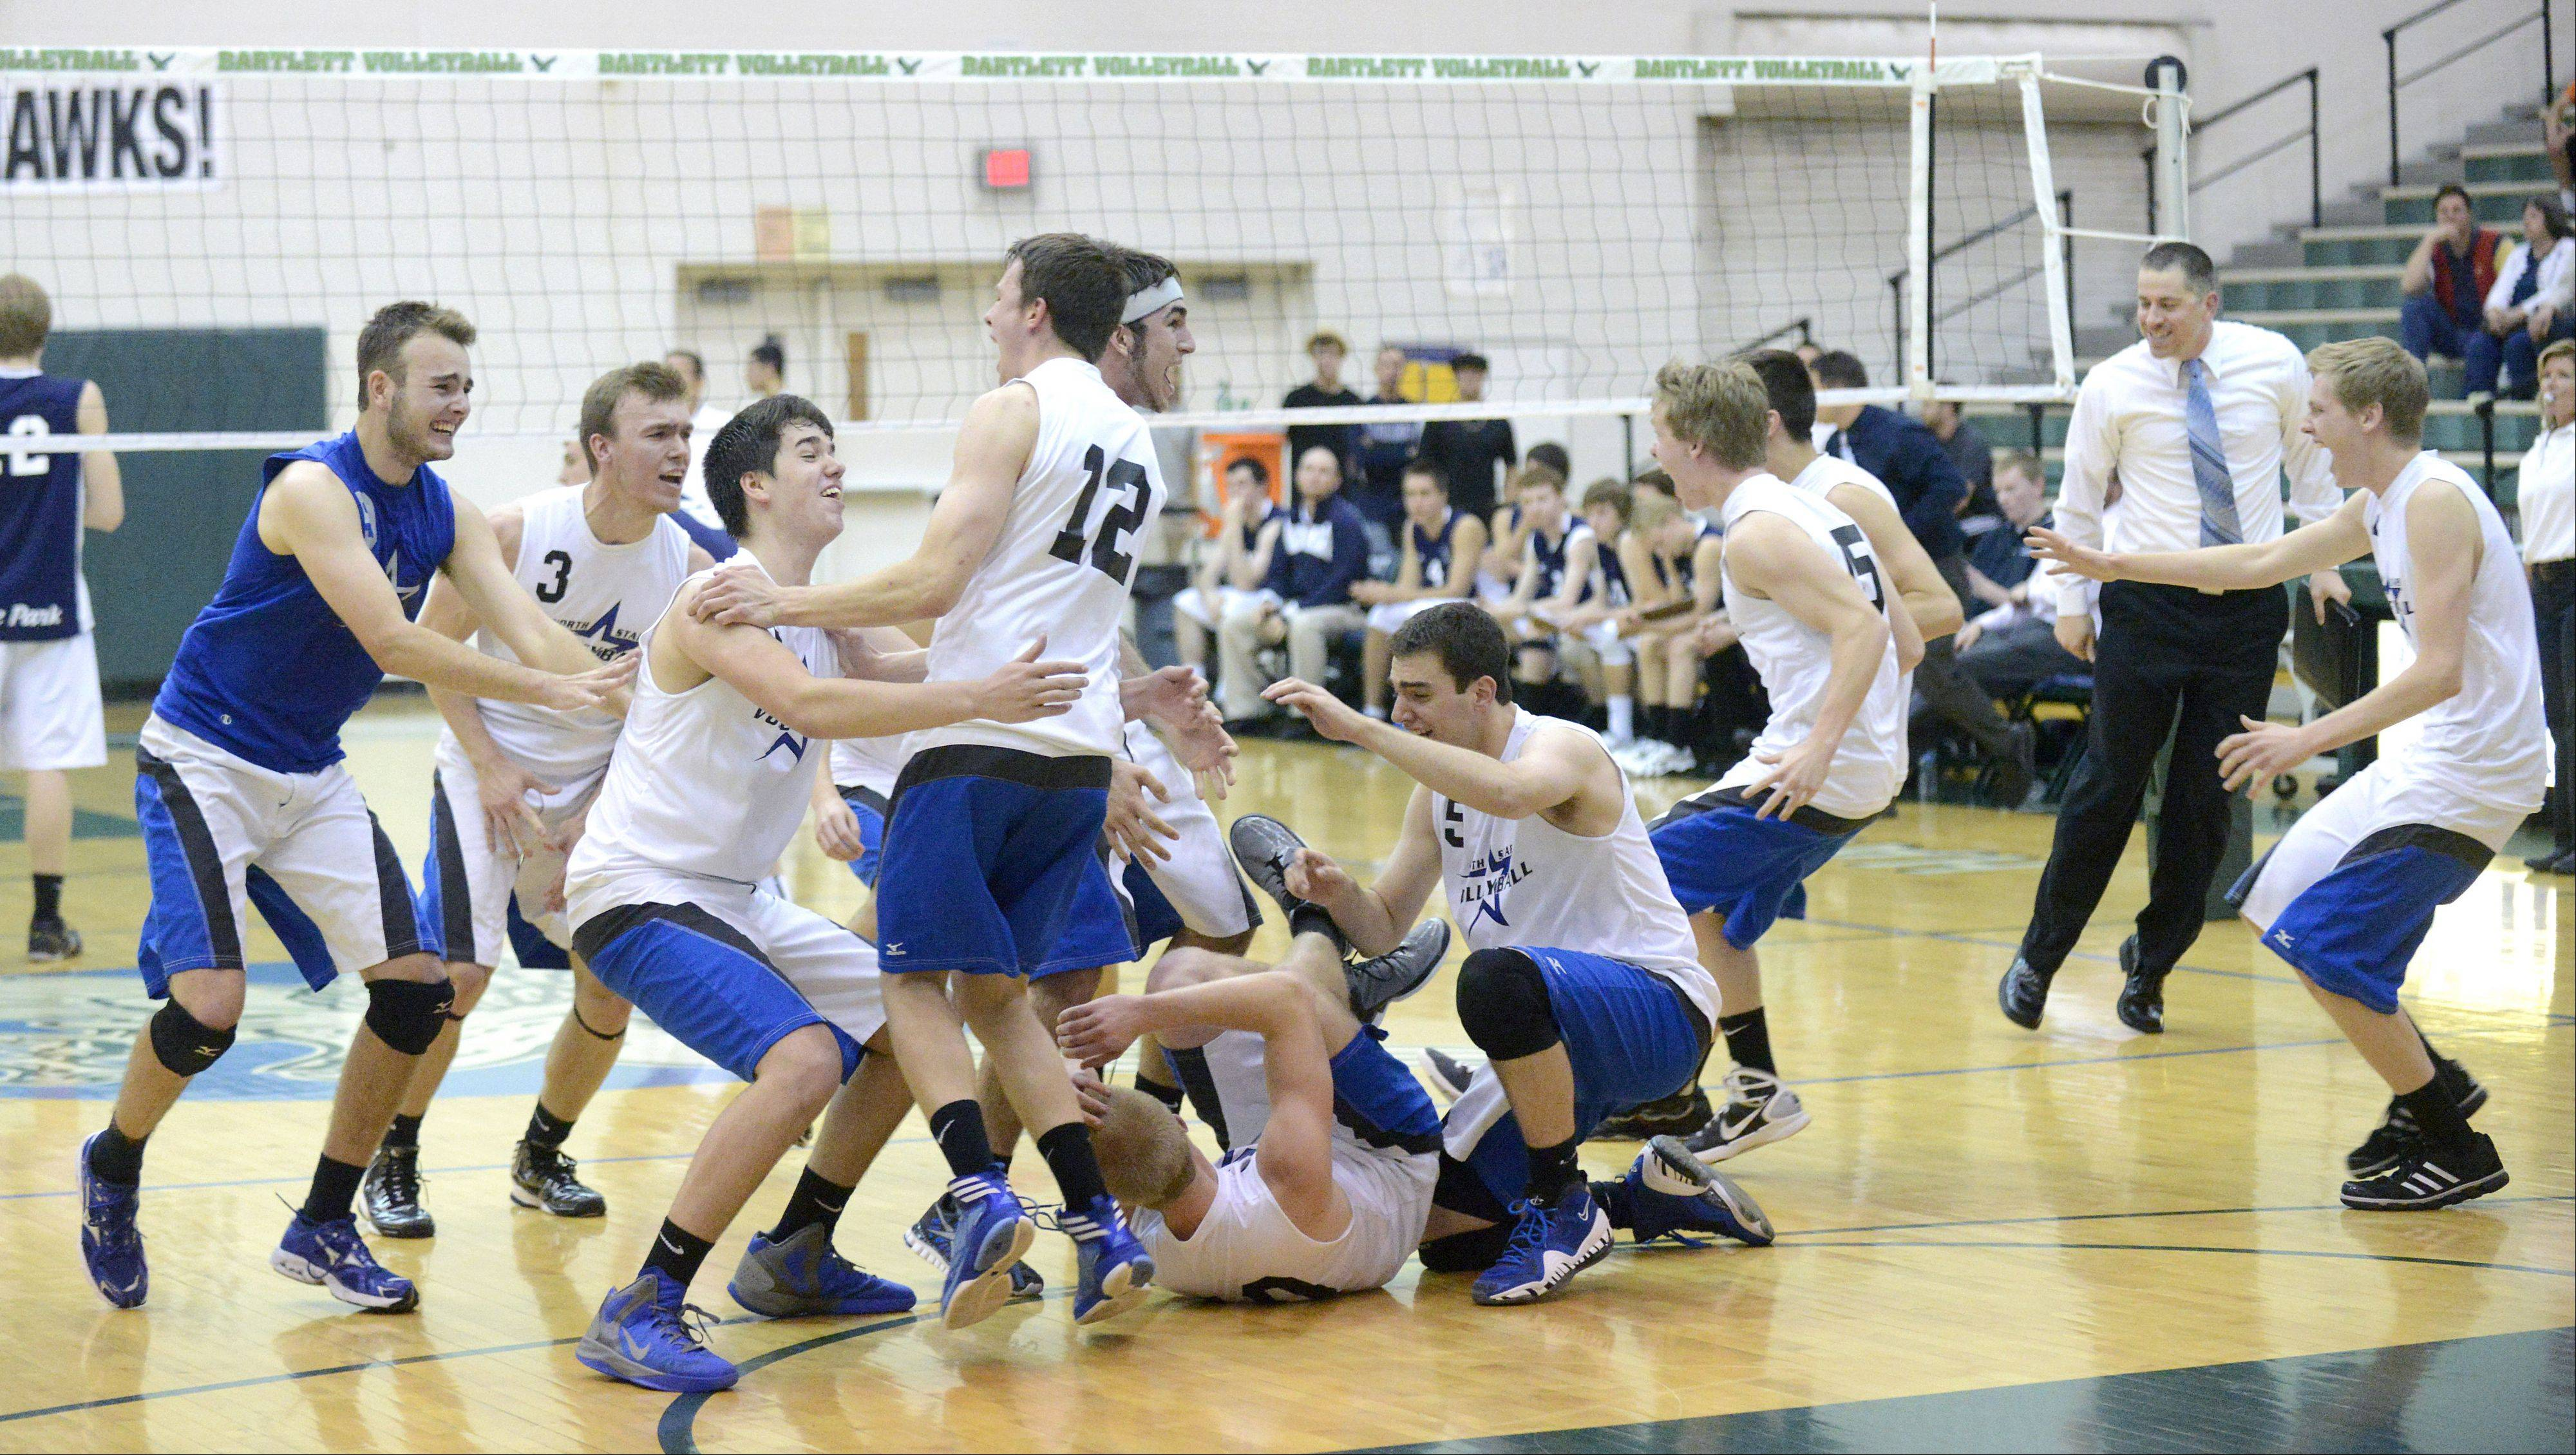 St. Charles North�s Jack Harbaugh prepares to lift teammate Jake Hamilton (12) into the air as Kevin Beach rolls on the floor as the North Stars celebrate their sectional championship over Lake Park at Bartlett on Tuesday.